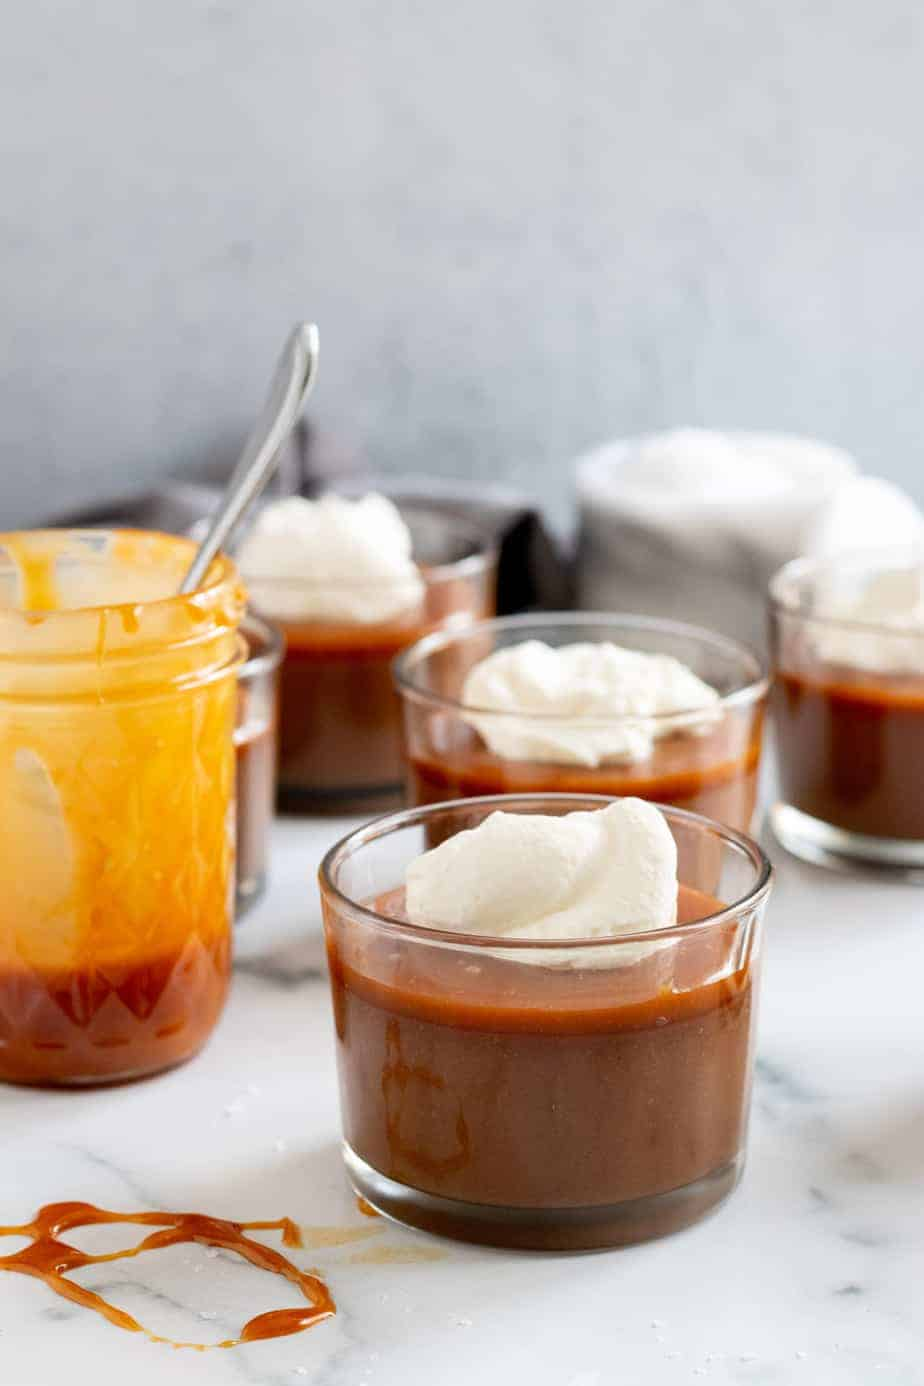 cups of chocolate budino with jar of salted caramel